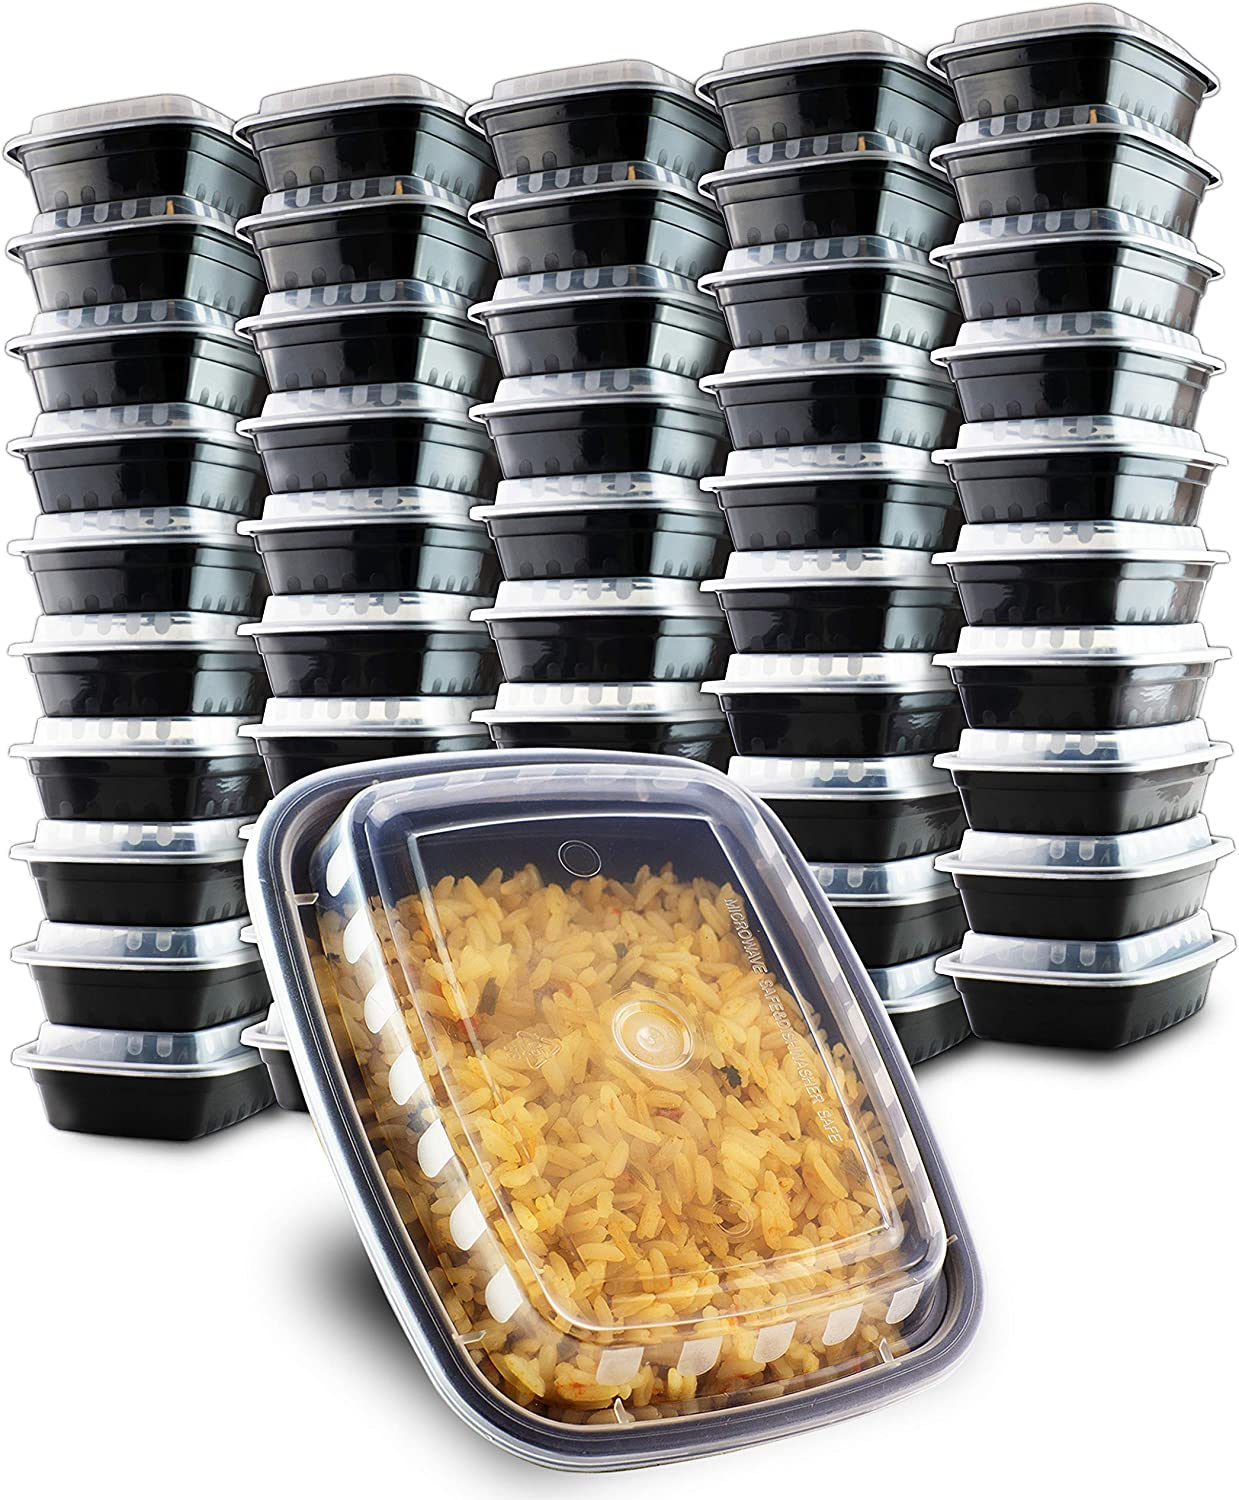 50 Pack- Chefible 12 oz Small MINI Food Storage or Bento Container, Bariatric Meal Prep, Durable, BPA-free, Reusable, Washable, Microwavable, Perfect for Portion Control!